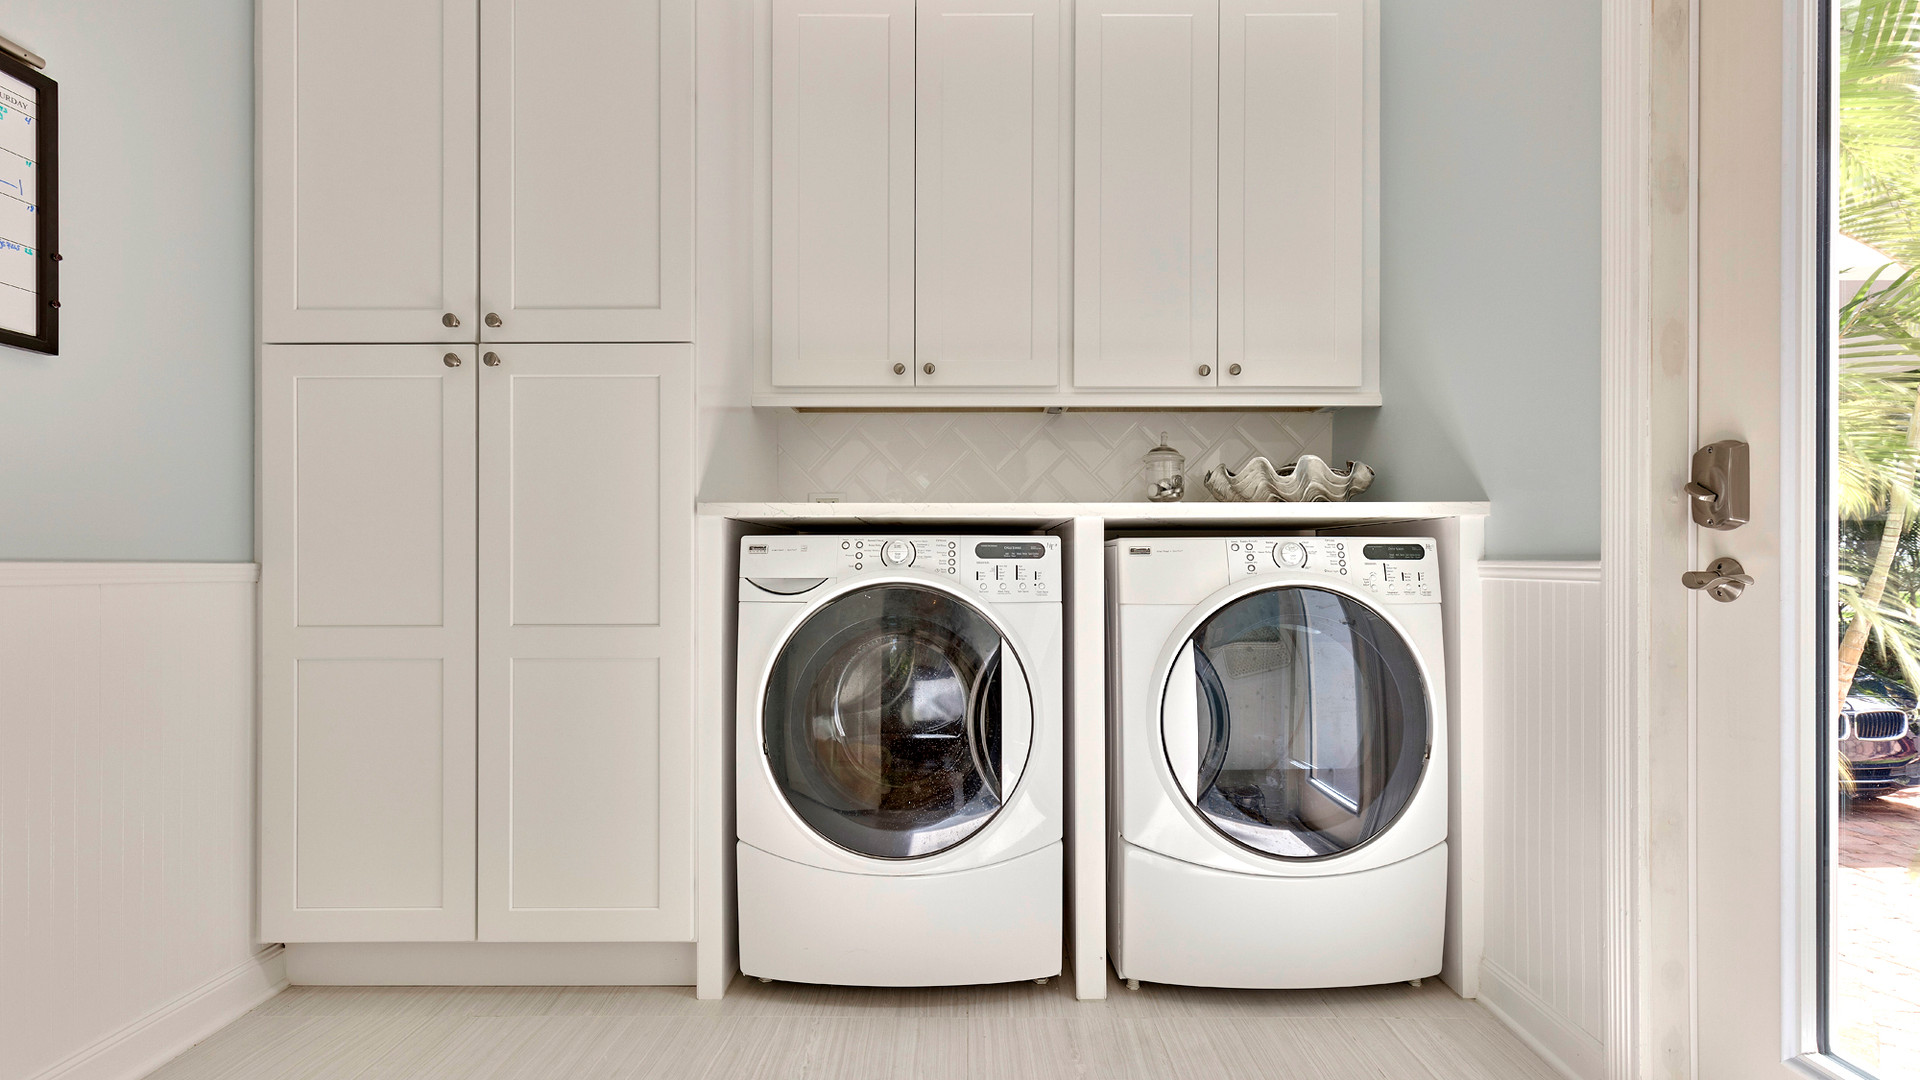 136 Sweet Bay Cr laundry room.jpg